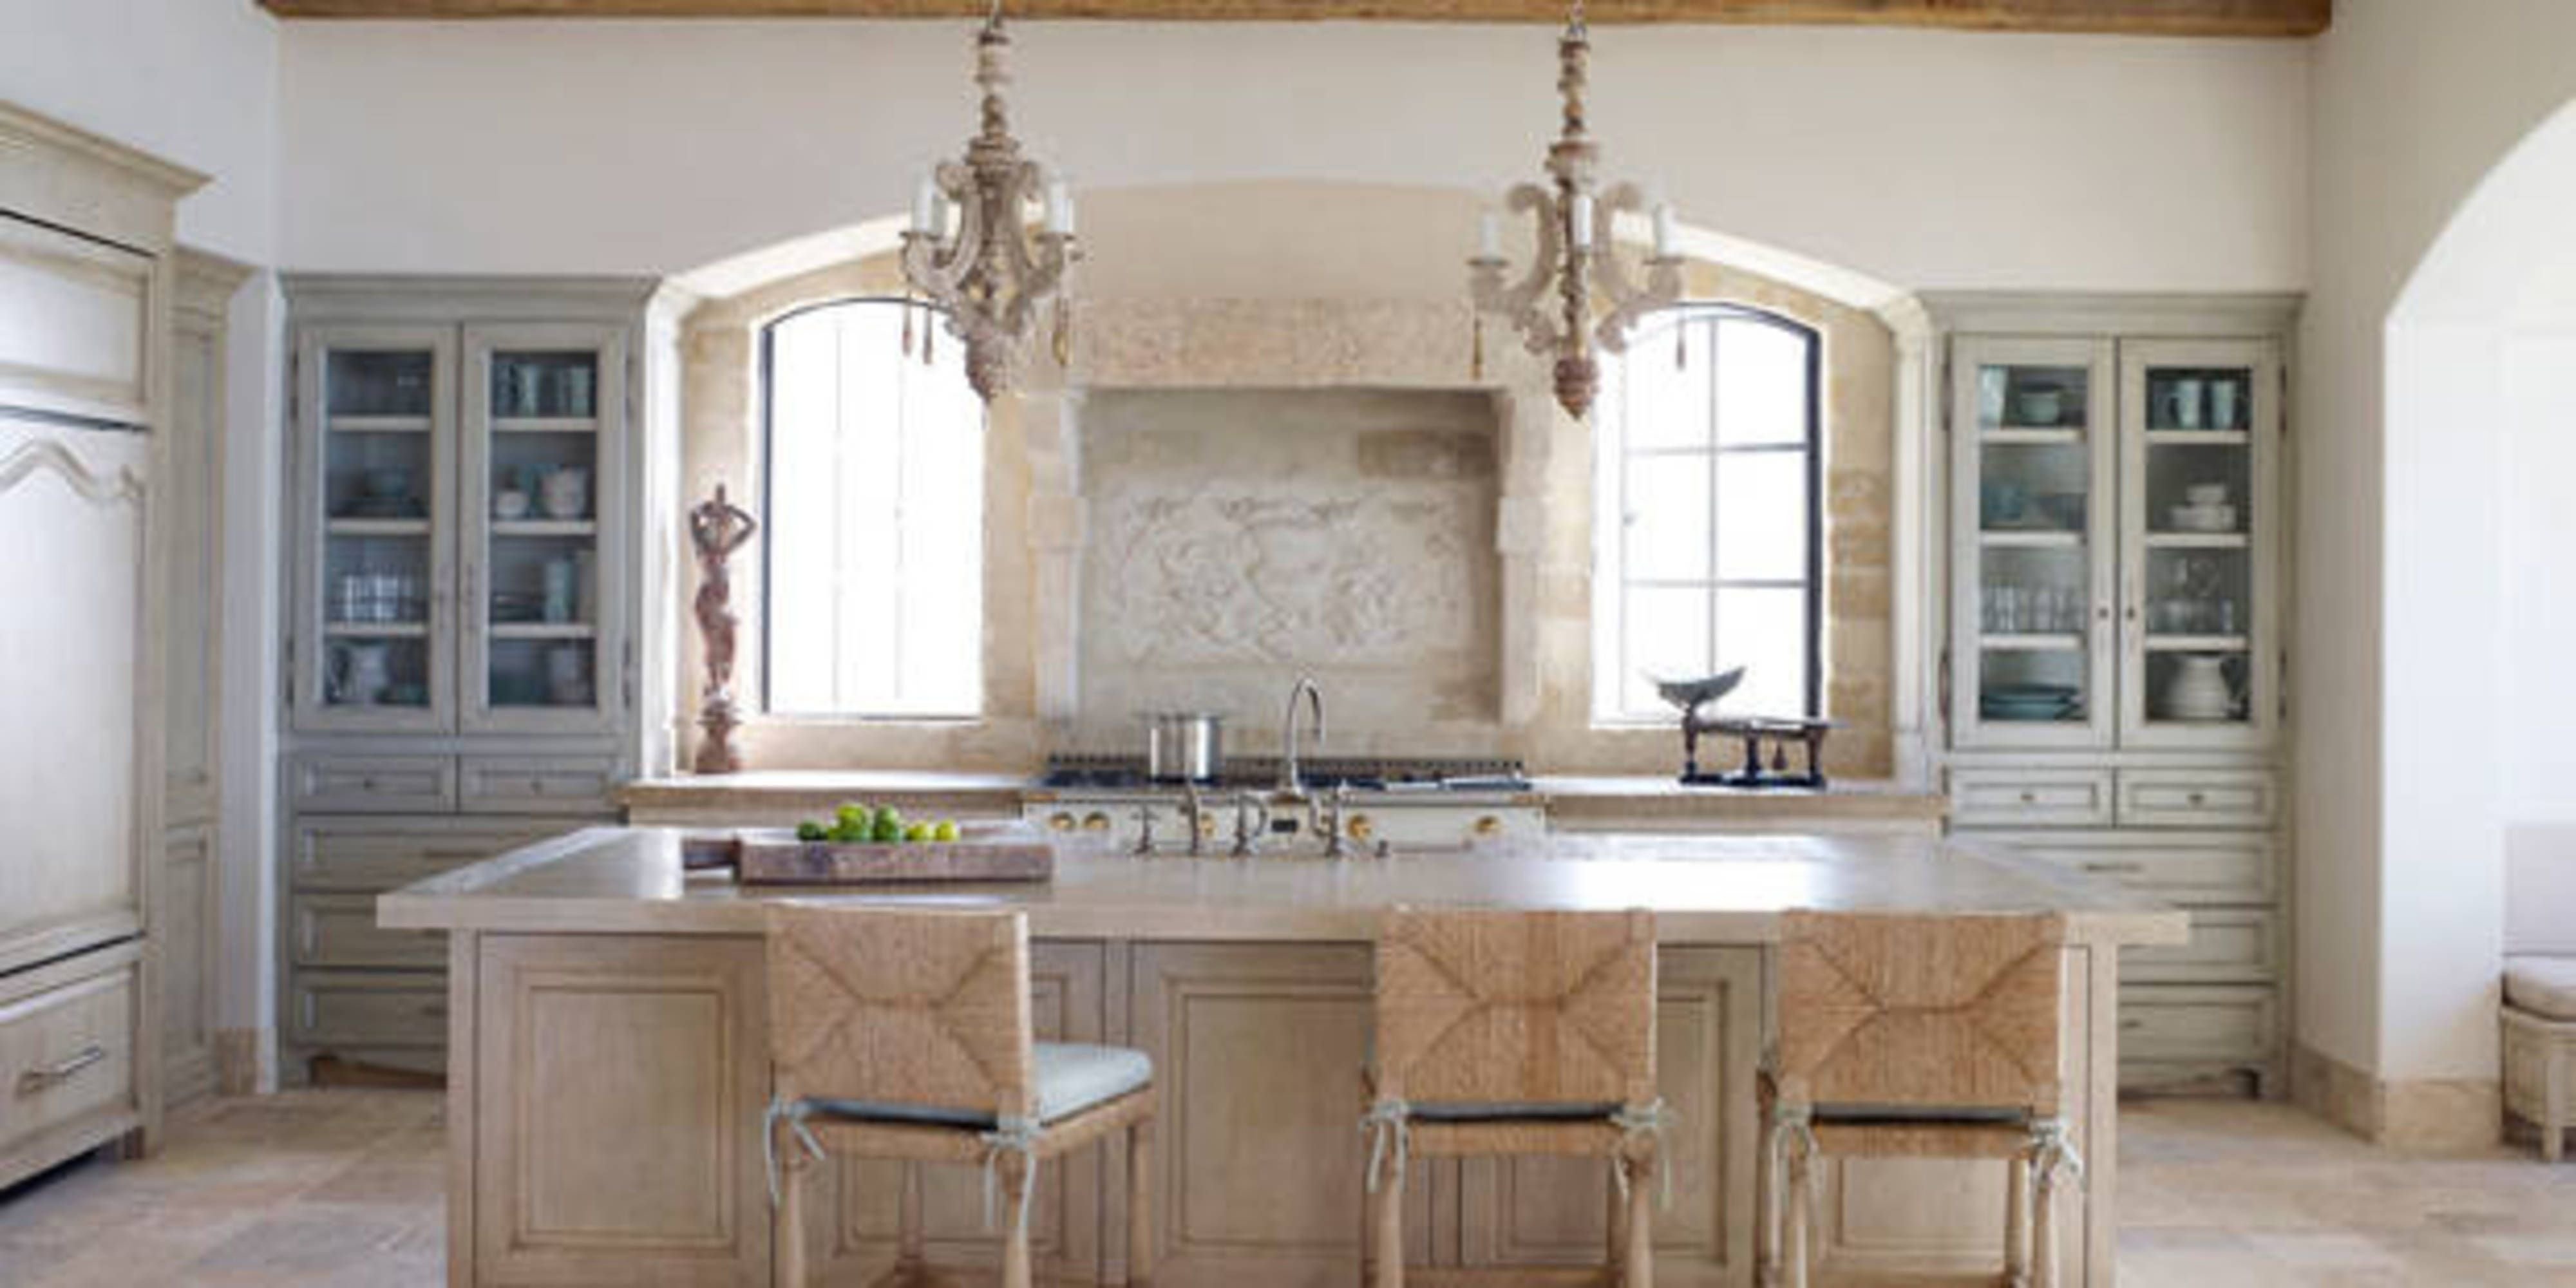 Feast Your Eyes On These 42 Stylish Kitchen Ideas | Verandas ... on cote de texas kitchens, candice olson kitchens, beautiful black kitchens, architectural digest kitchens, patio kitchens, coastal living kitchens, extremely tiny kitchens, this old house kitchens, fireplace kitchens, most beautiful kitchens, suzanne kasler kitchens, pinterest kitchens, stratosphere kitchens, 1890's kitchens, cape cod kitchens, nice looking kitchens, domino kitchens, cottage living kitchens, flip or flop kitchens,